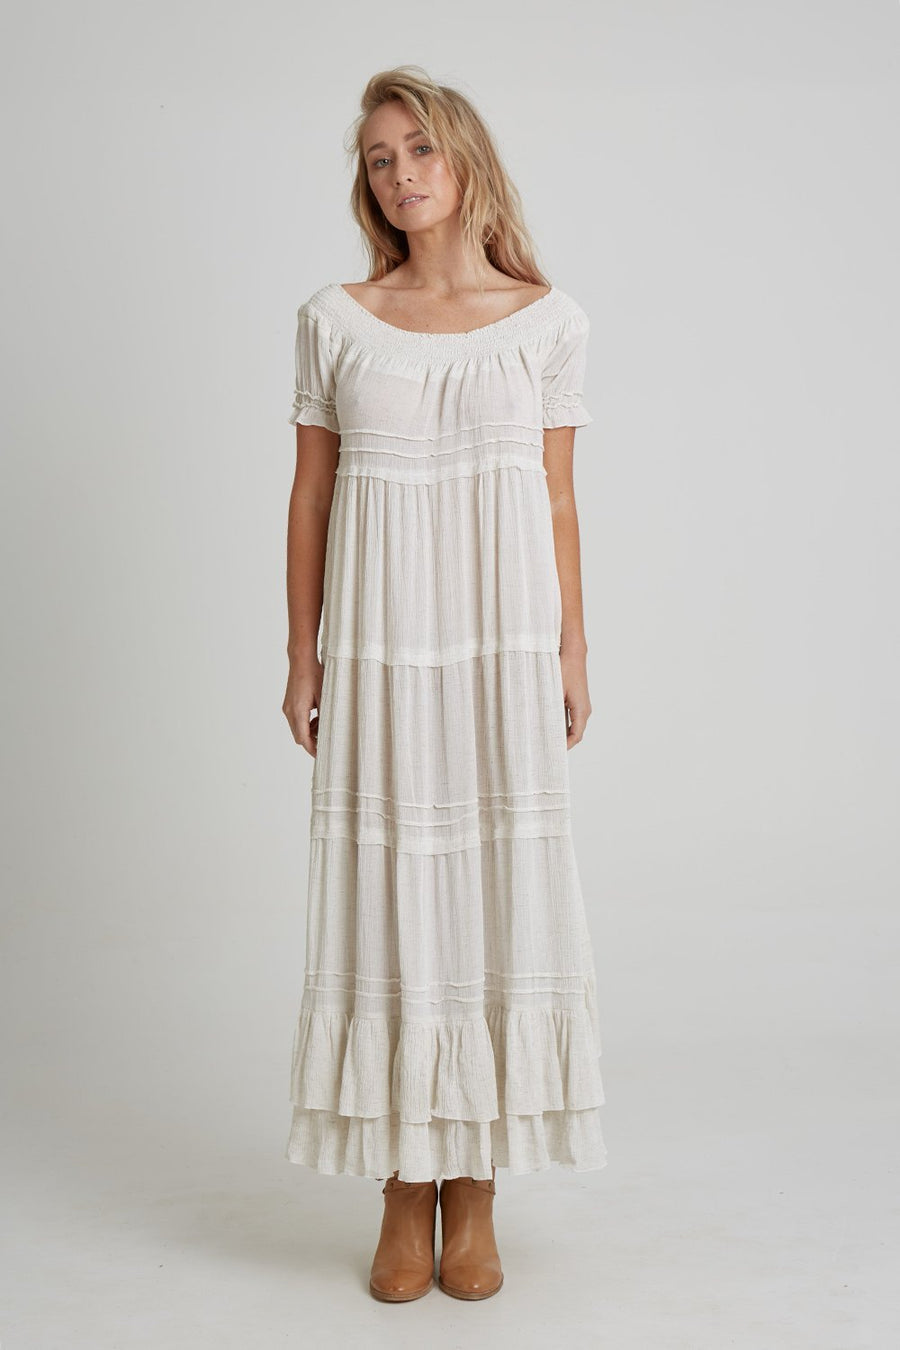 Saint Helena Mia Maxi Dress